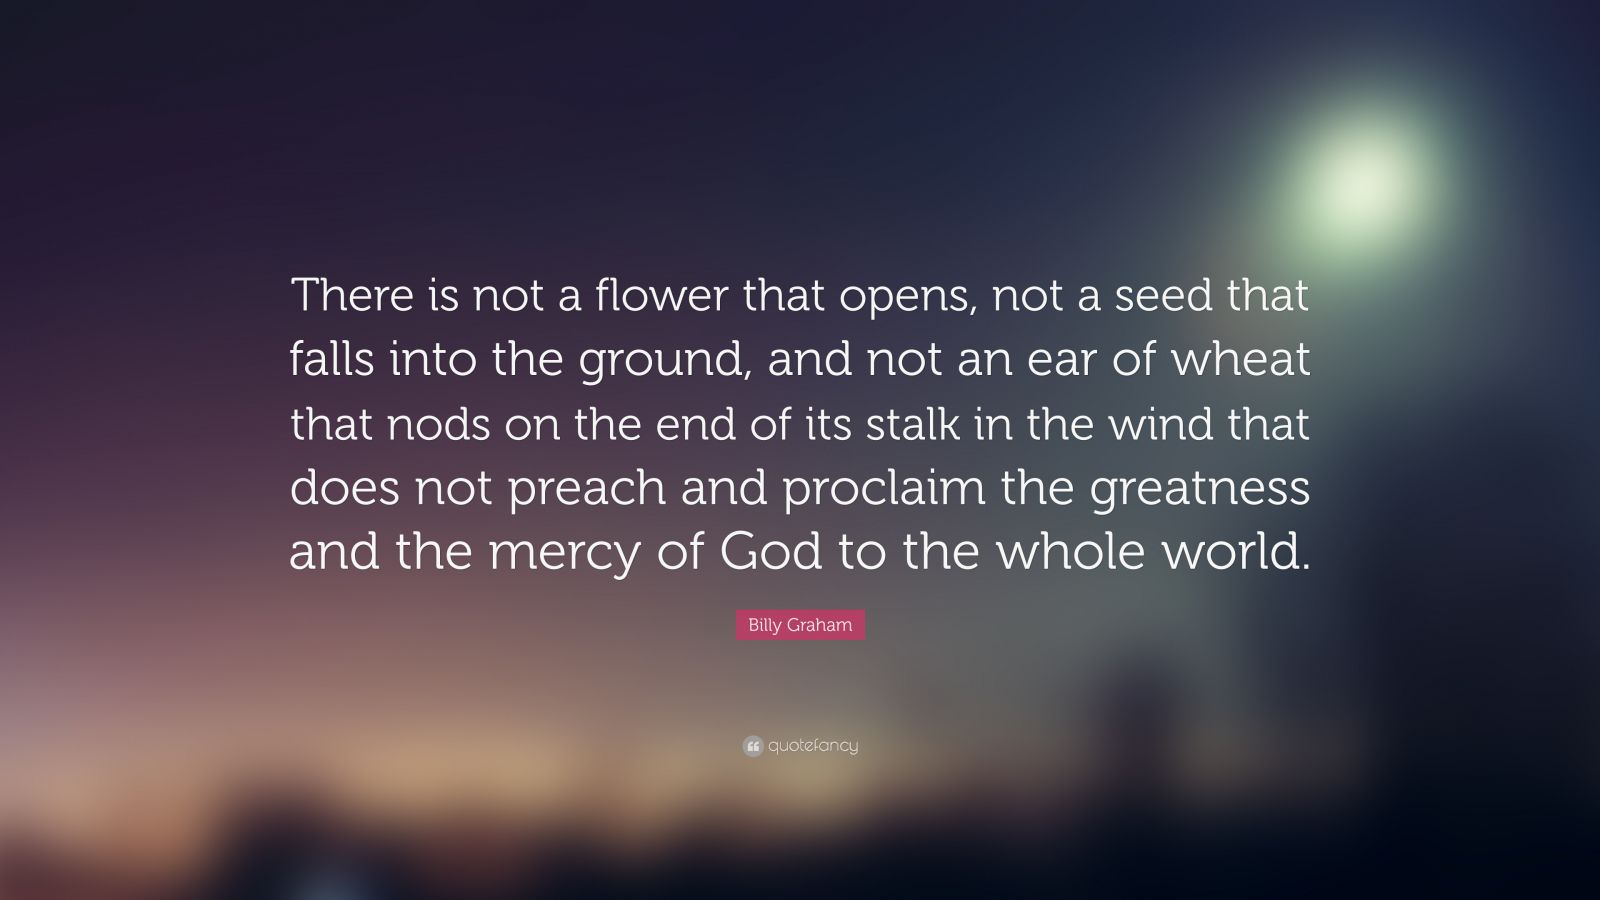 """Billy Graham Quote: """"There is not a flower that opens, not a seed that falls into the ground, and not an ear of wheat that nods on the end of its stalk in the wind that does not preach and proclaim the greatness and the mercy of God to the whole world."""""""